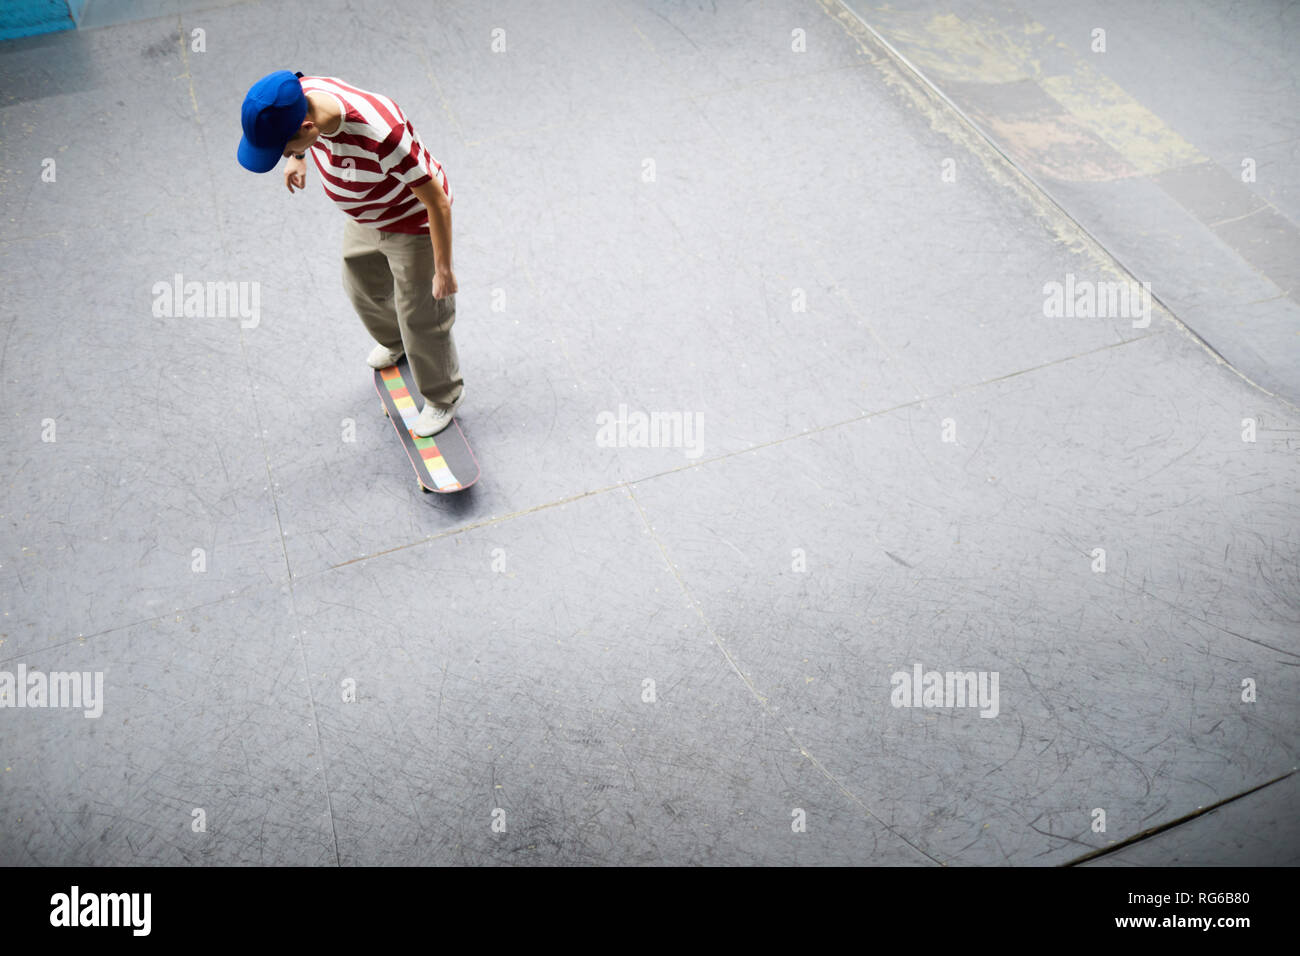 View of young man in casualwear standing on skateboard and moving along special flat area for acrtivities - Stock Image